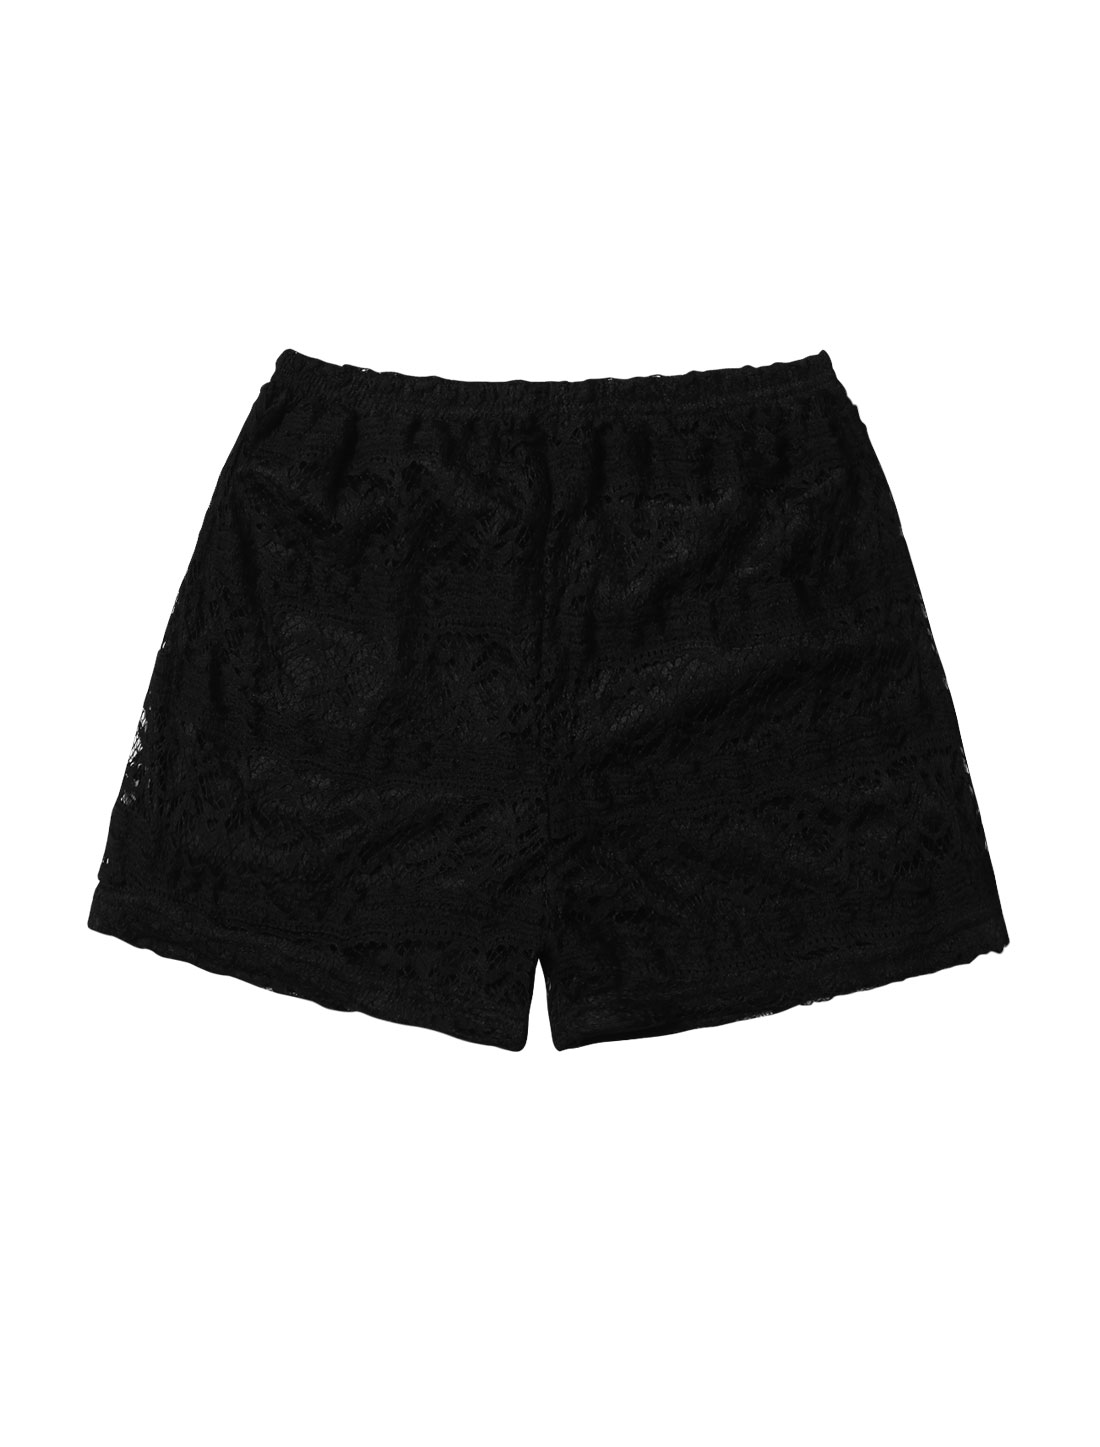 Women Lace Elastic Waist Stretchy Tiered Detail Shorts Black XS